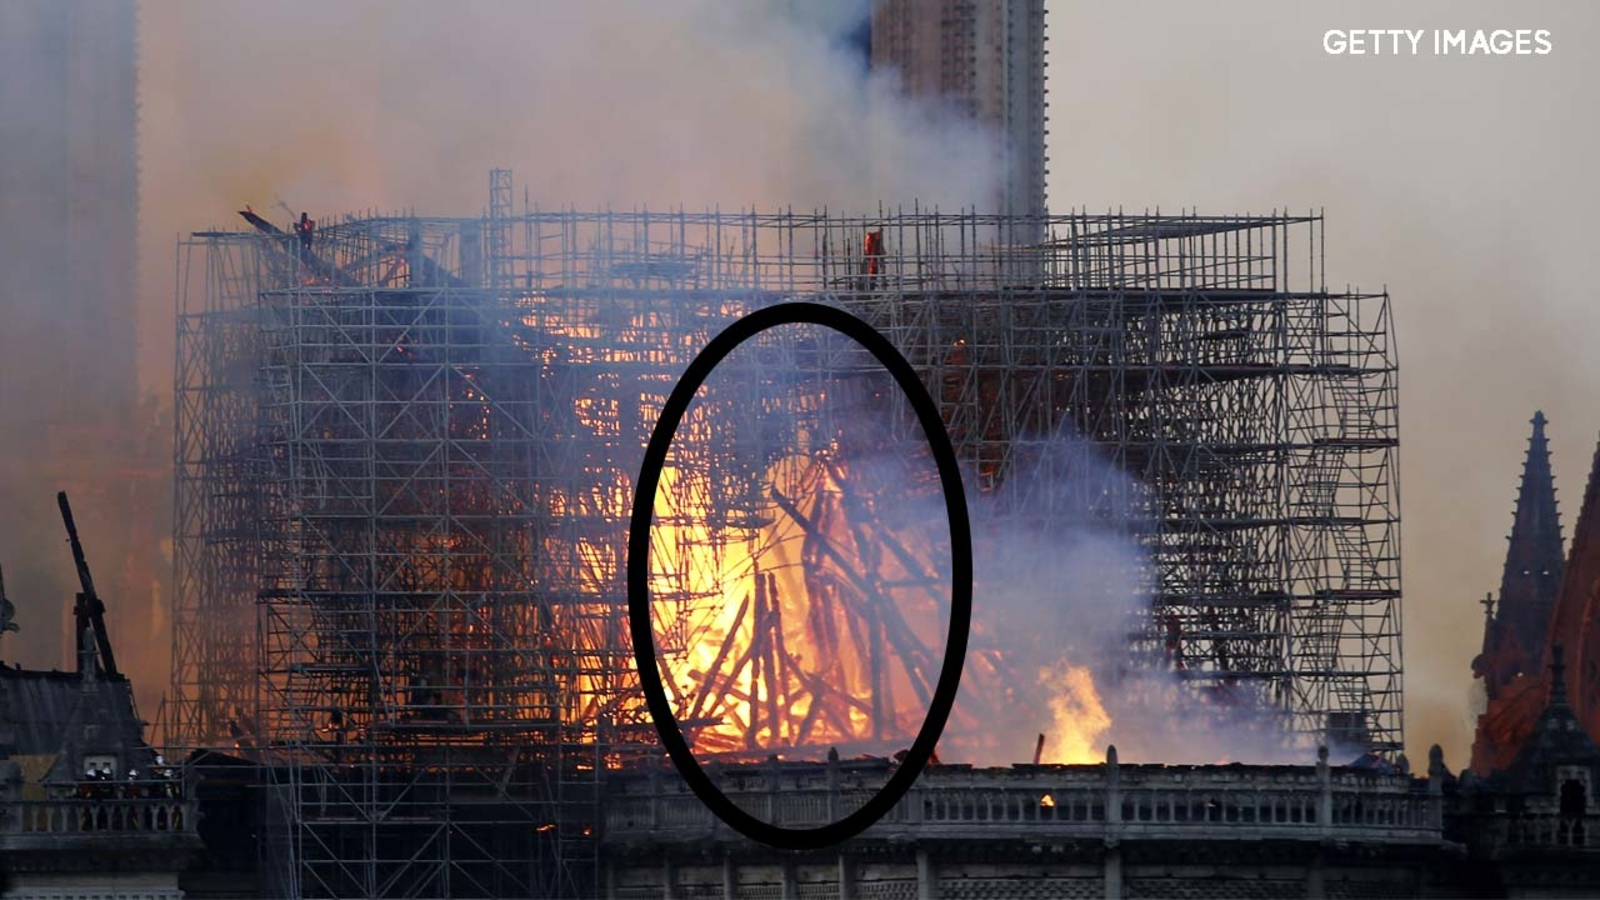 Notre Dame Fire: Social media believes it sees Jesus in Paris cathedral  flames - ABC7 San Francisco